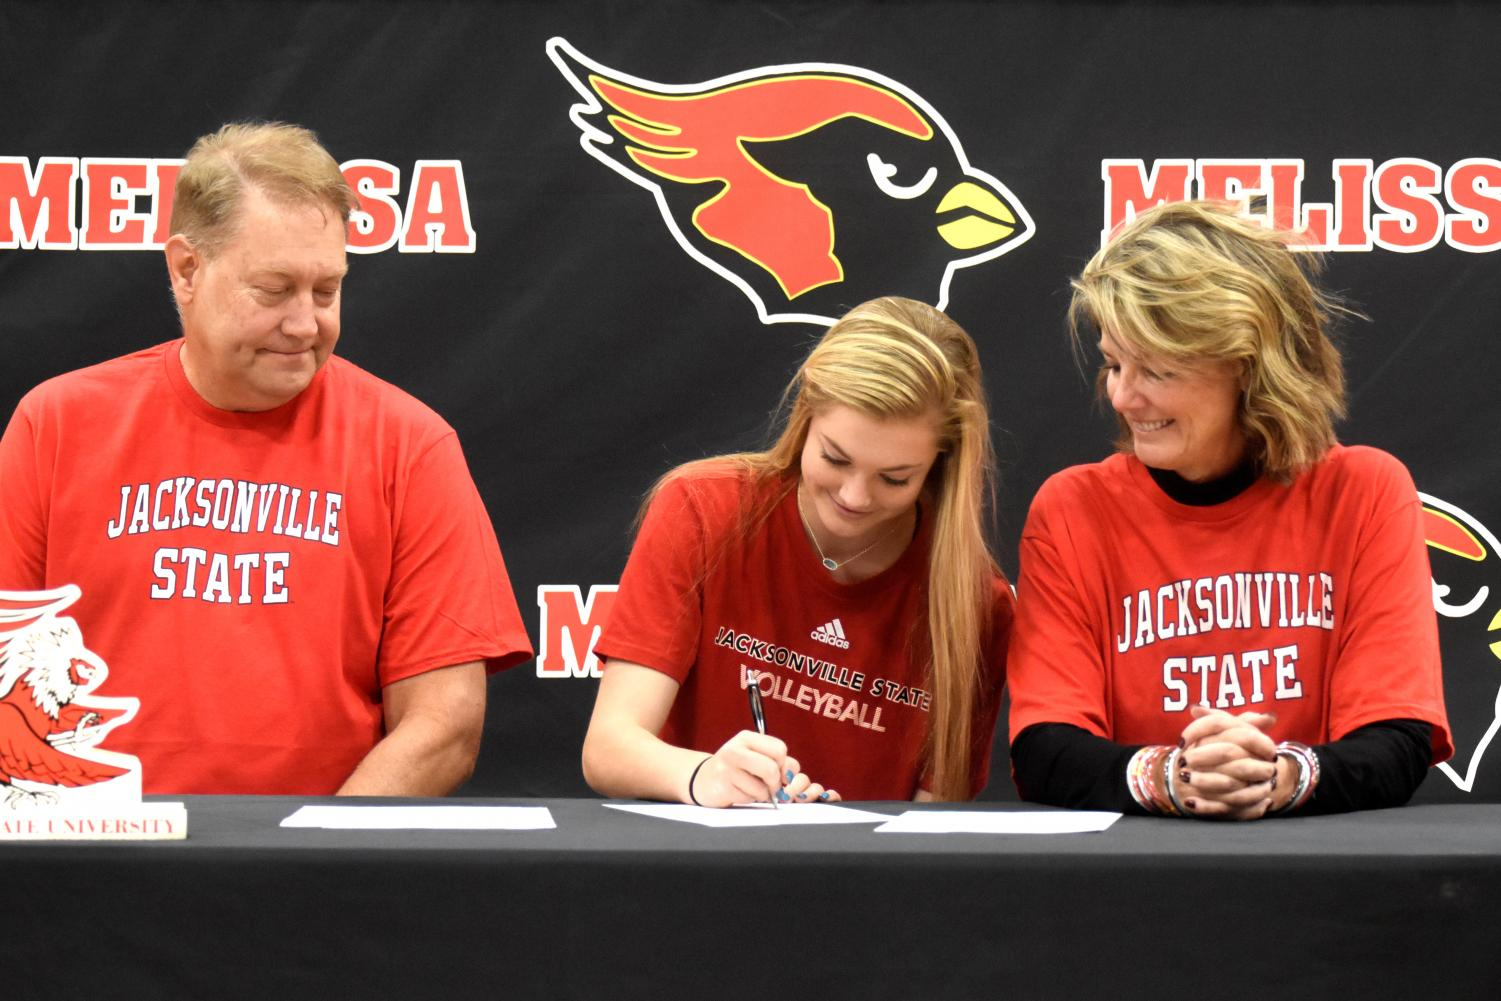 Kasson signs to Jacksonville State.